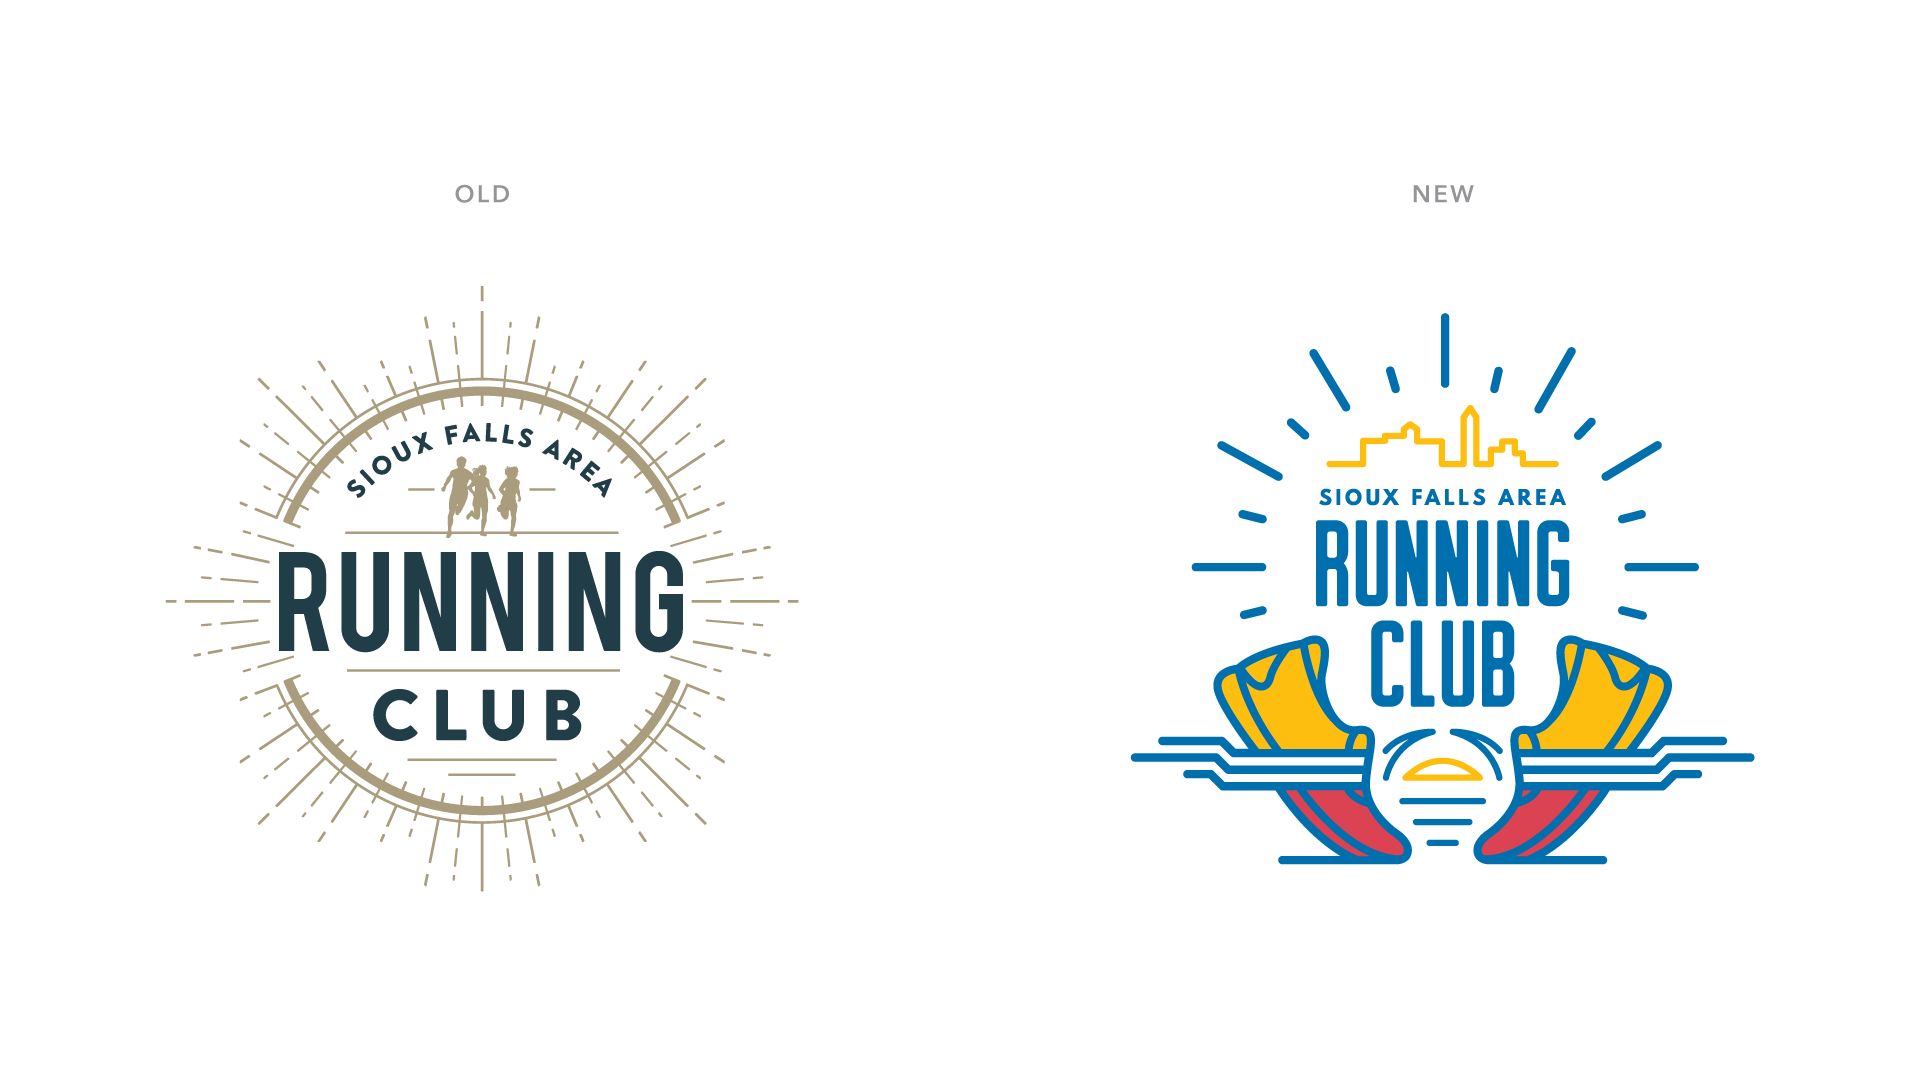 run-club-old-new-logos